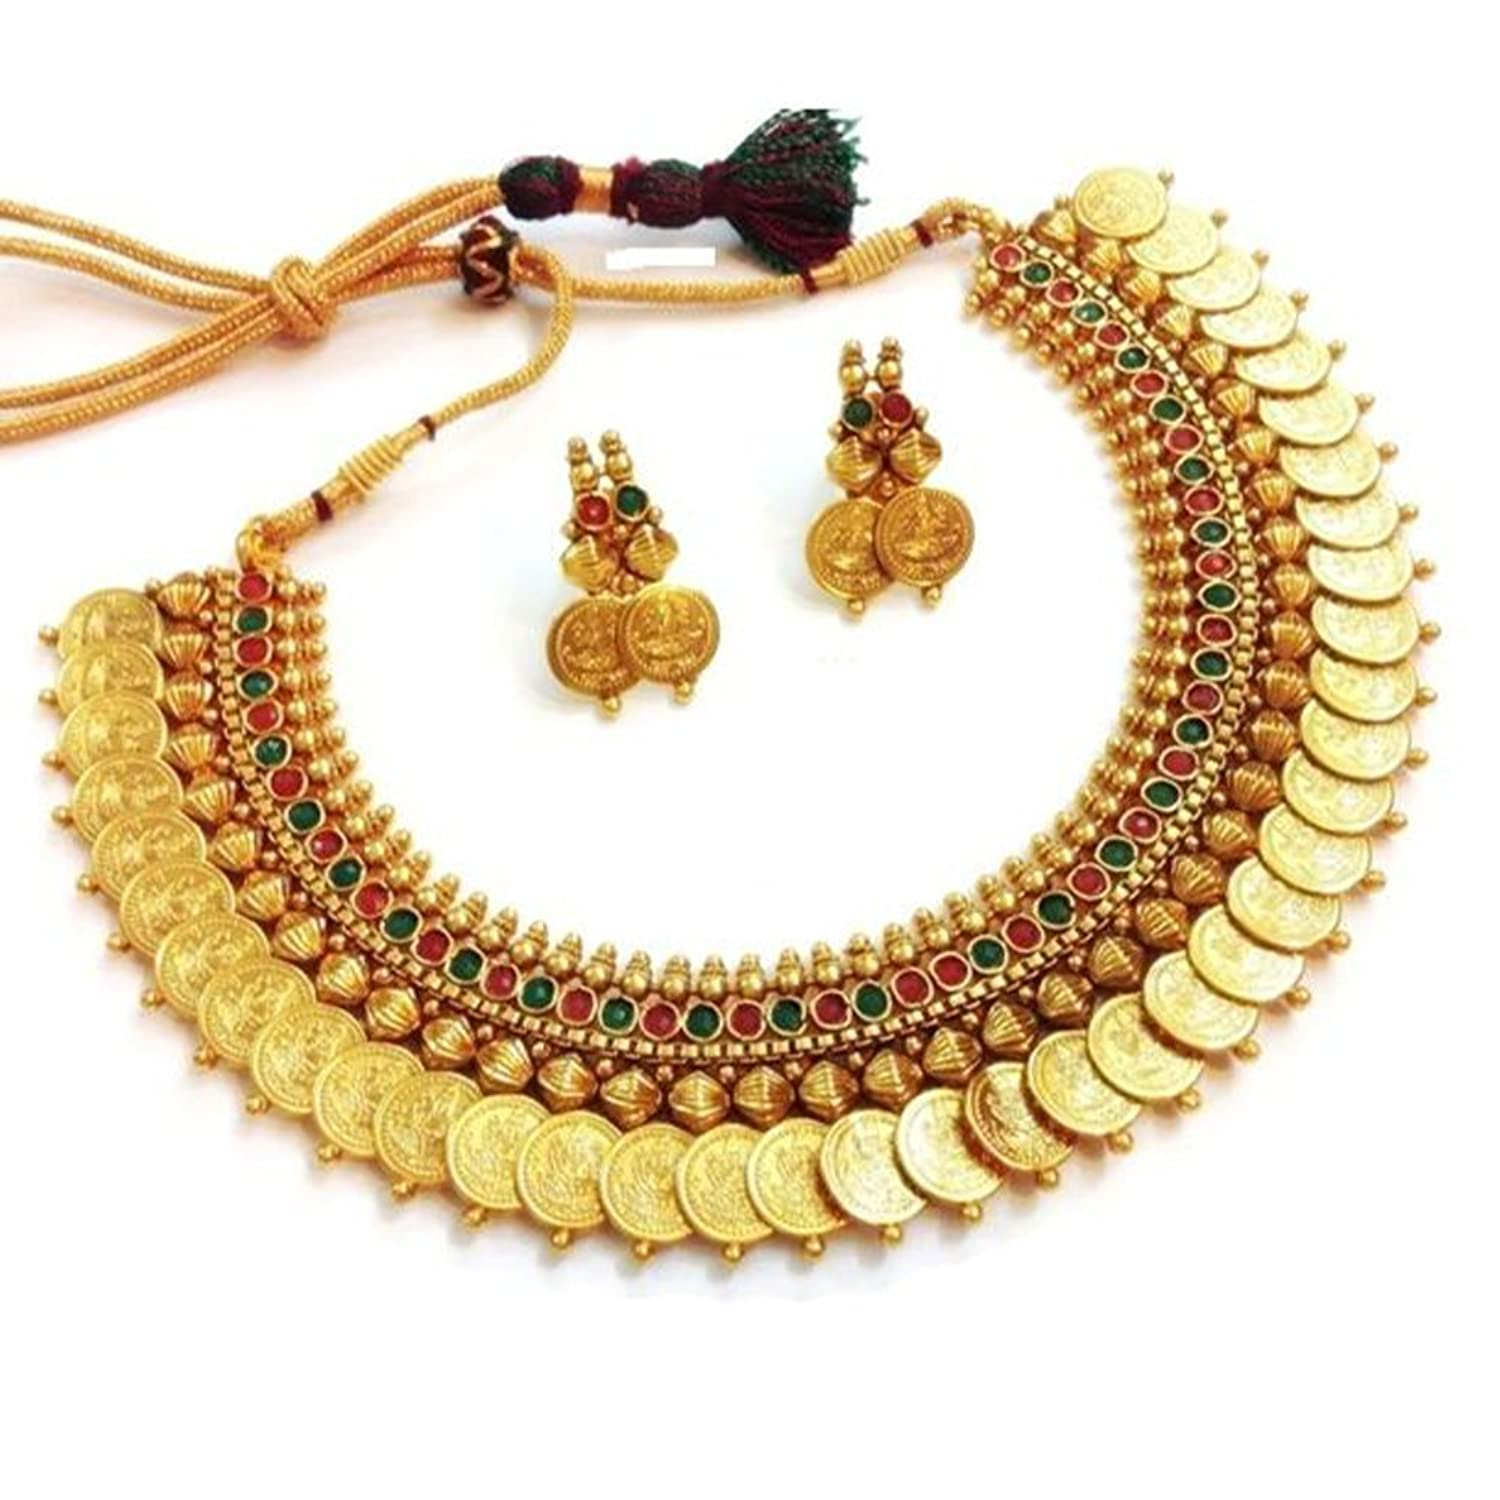 Buy zeneme red green temple coin choker jewellery set necklace buy zeneme red green temple coin choker jewellery set necklace set for women online at low prices in india amazon jewellery store amazon mozeypictures Choice Image